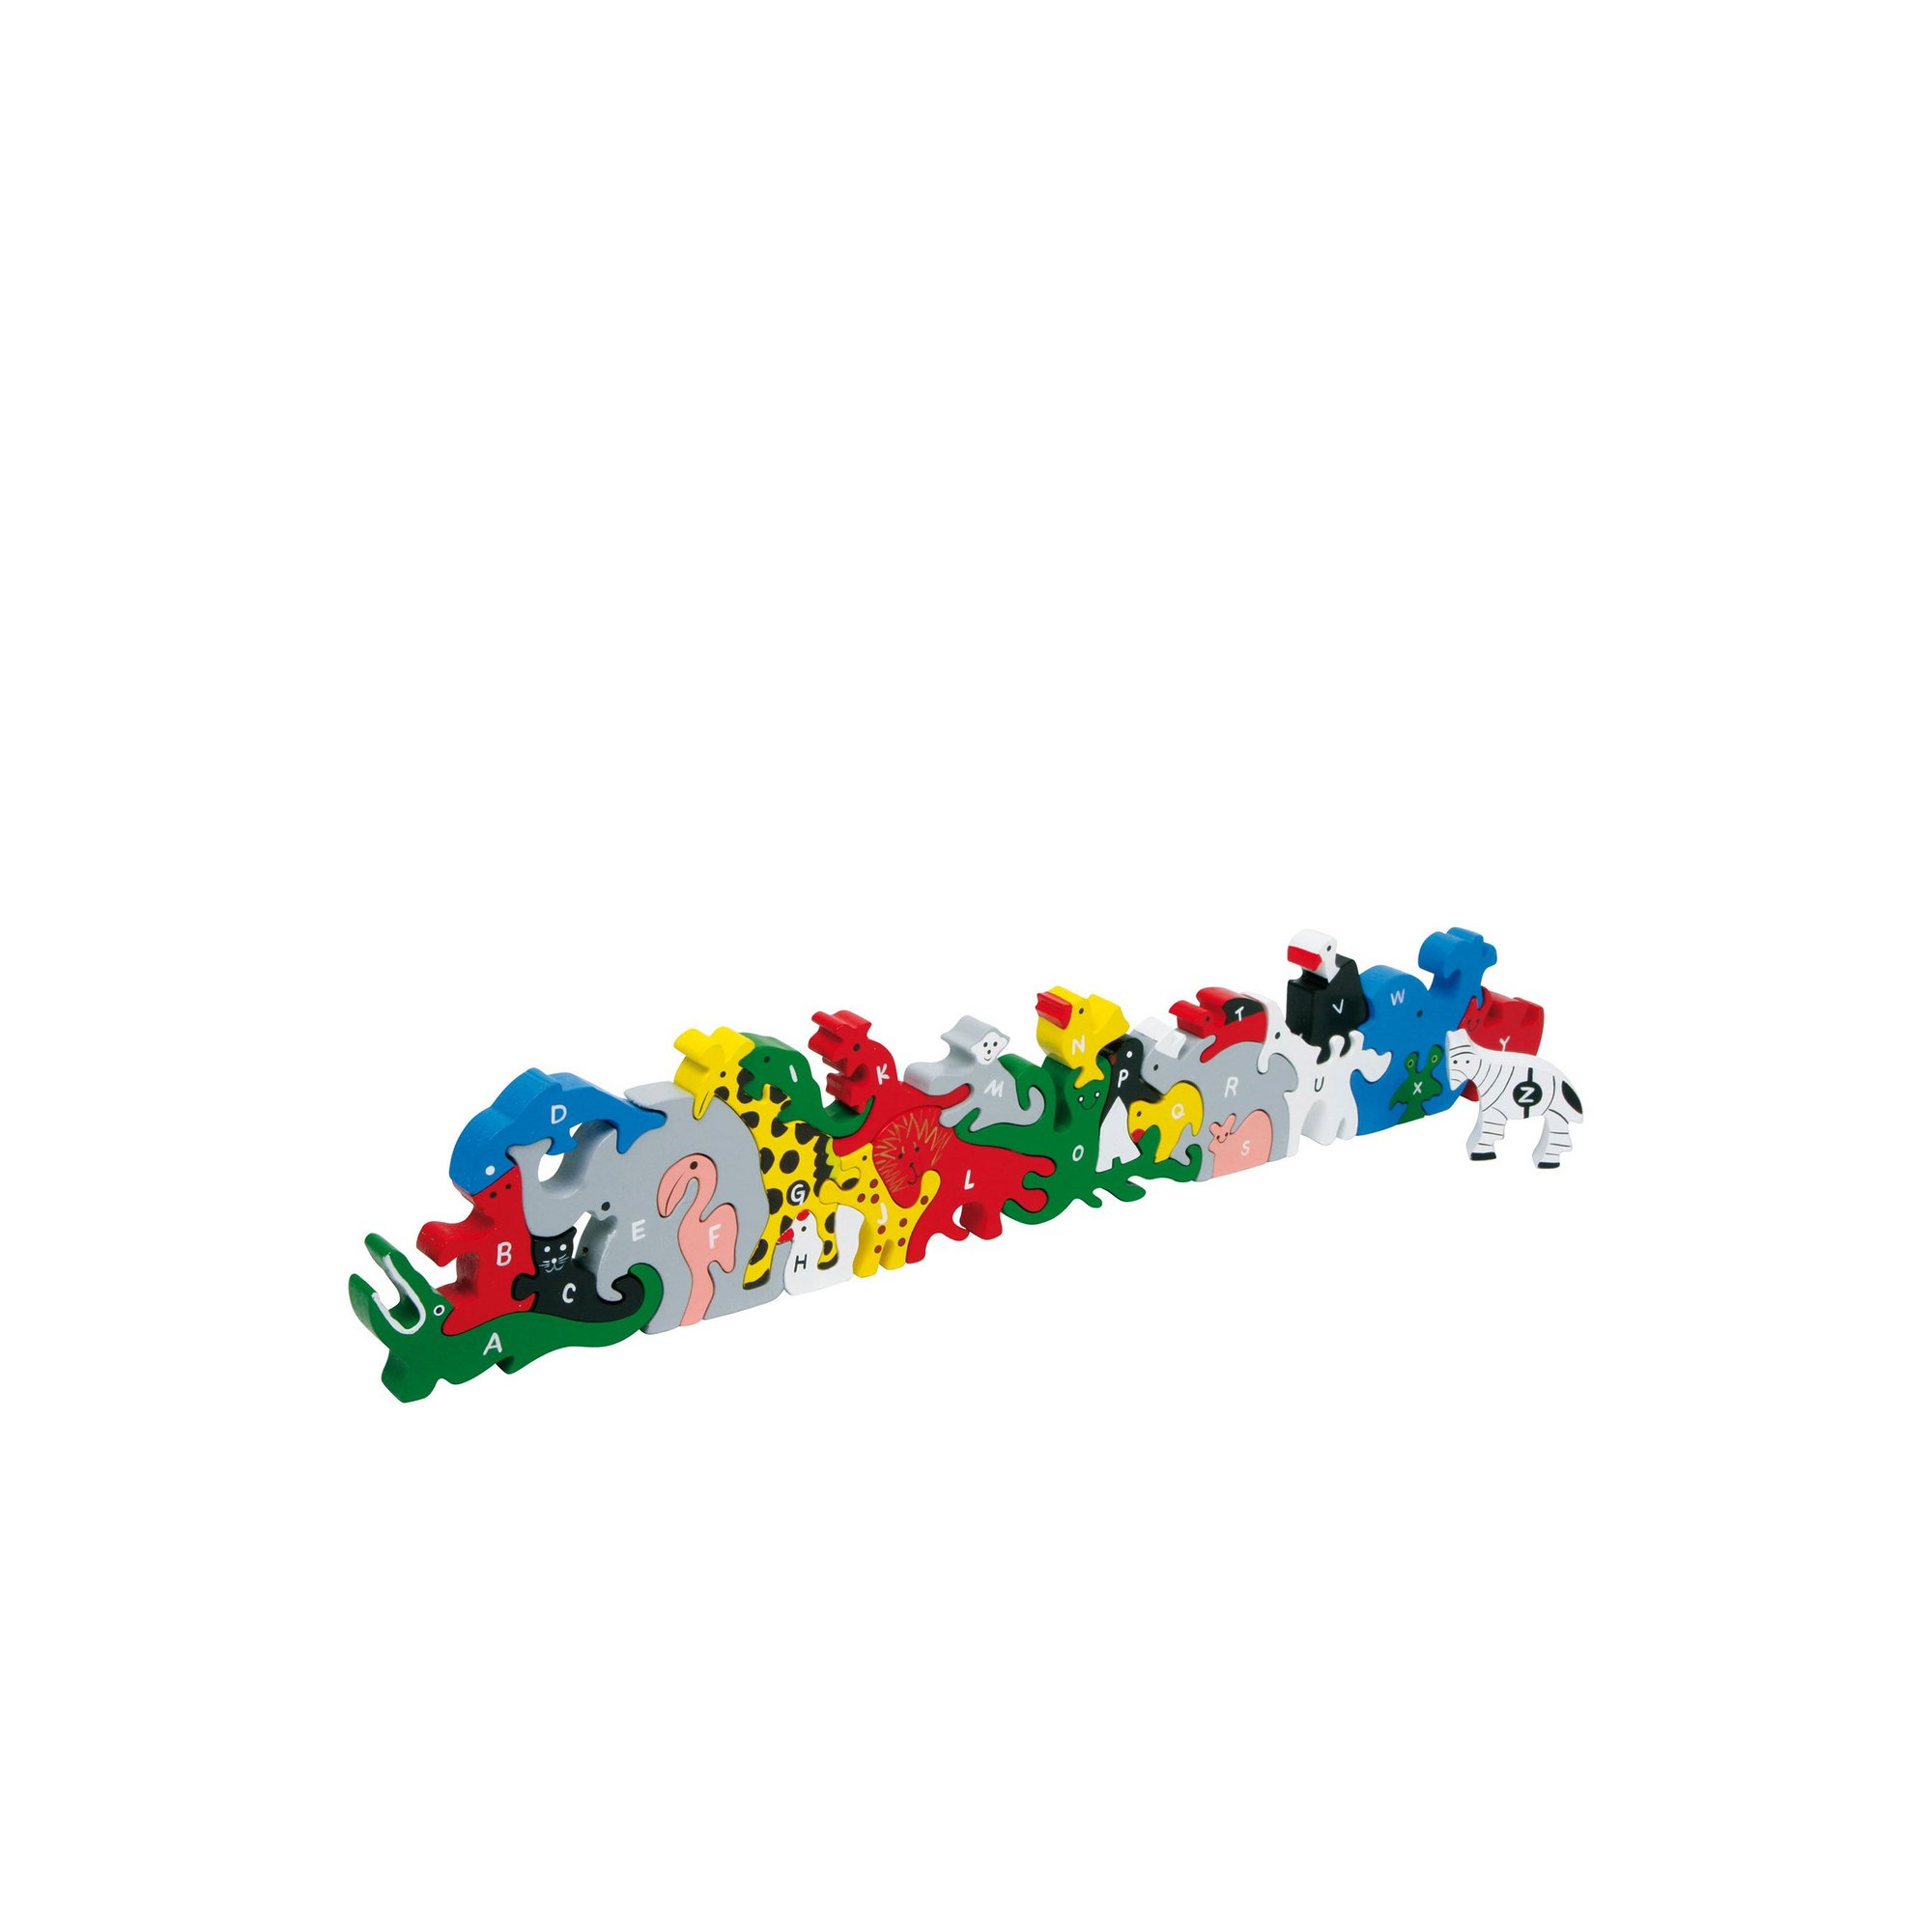 Image of LEGLER Small Foot Animal Letters and Numbers Wooden Plug Puzzle